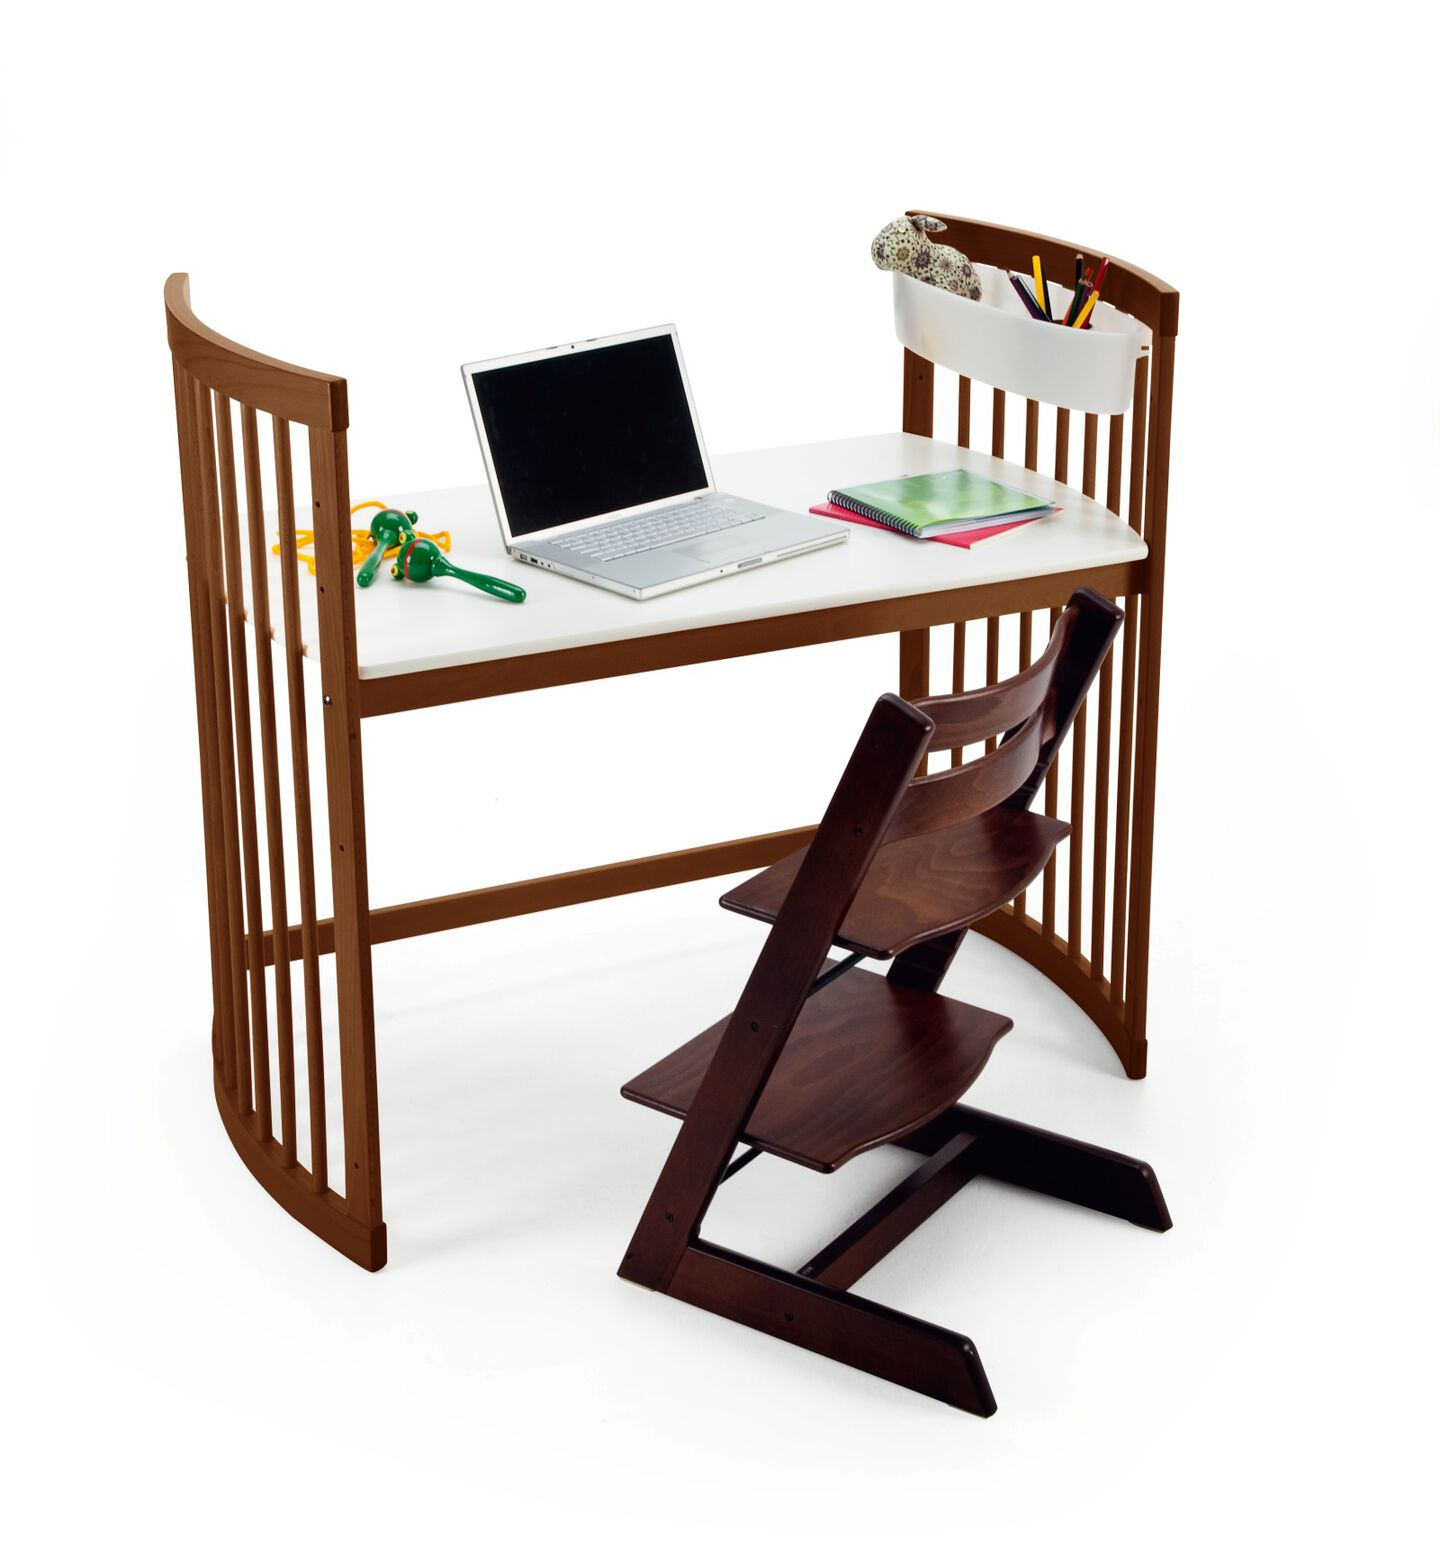 Stokke® Care large desk Walnut Brown, with Tripp Trapp® Walnut Brown.